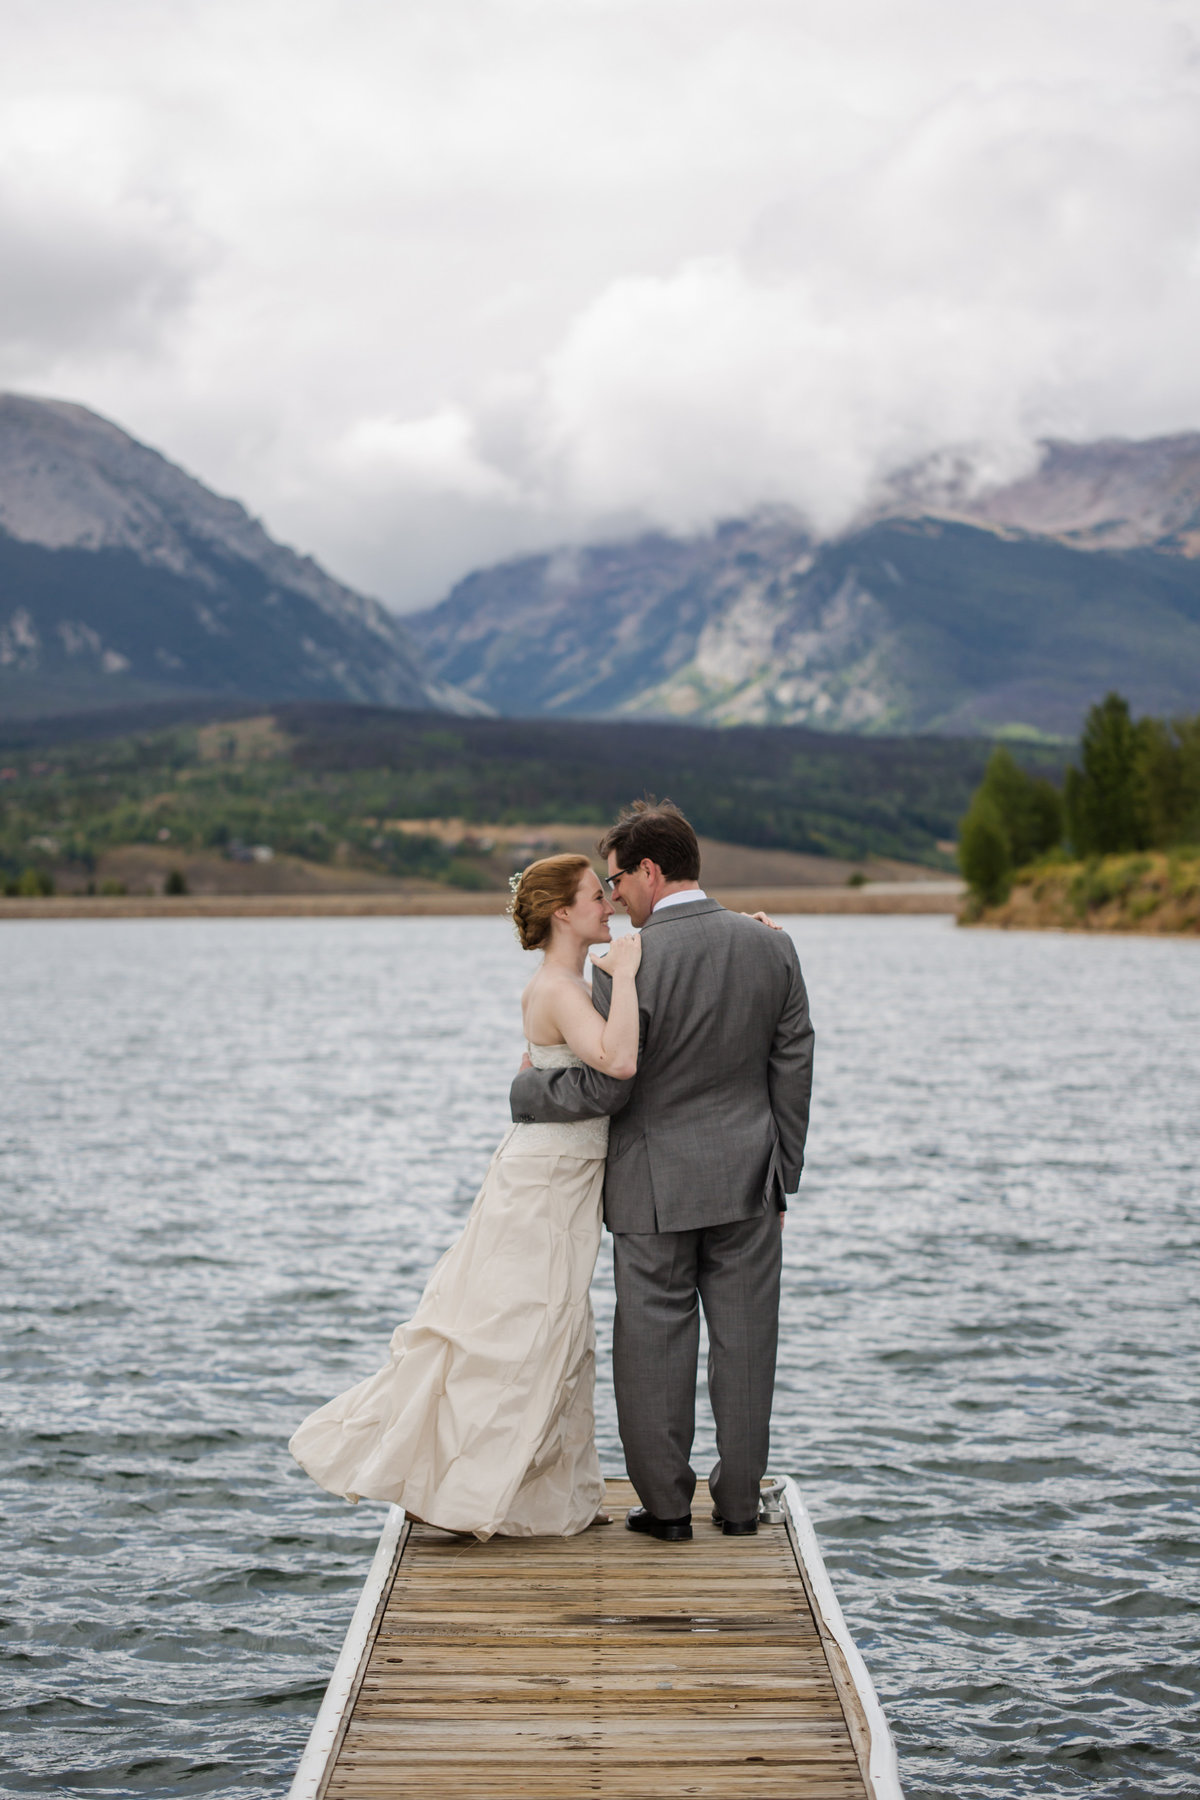 couple on dock on lake with mountains